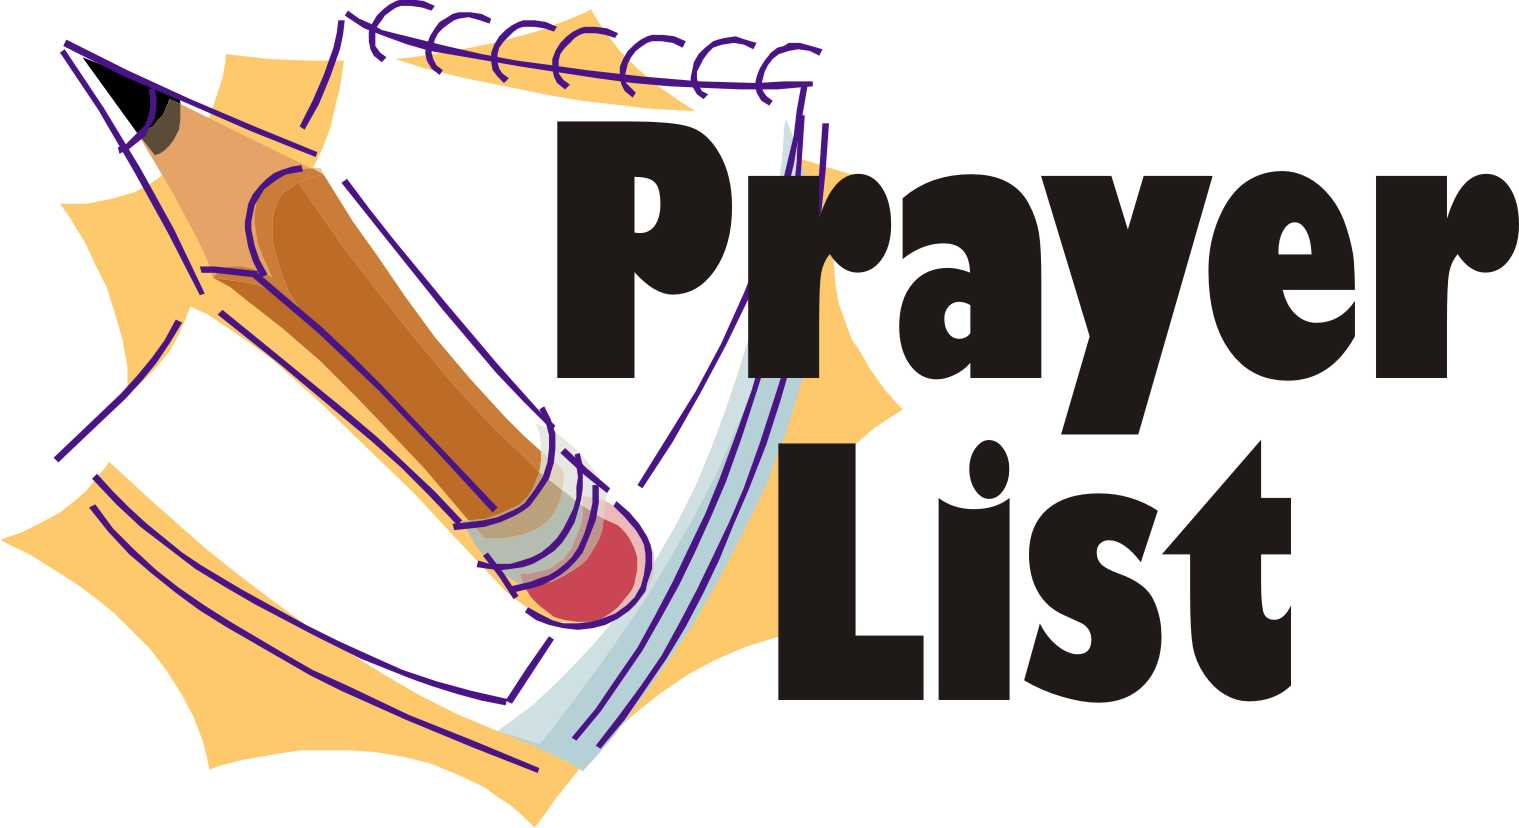 In our prayers clipart jpg black and white stock Free Prayer Cliparts, Download Free Clip Art, Free Clip Art on ... jpg black and white stock